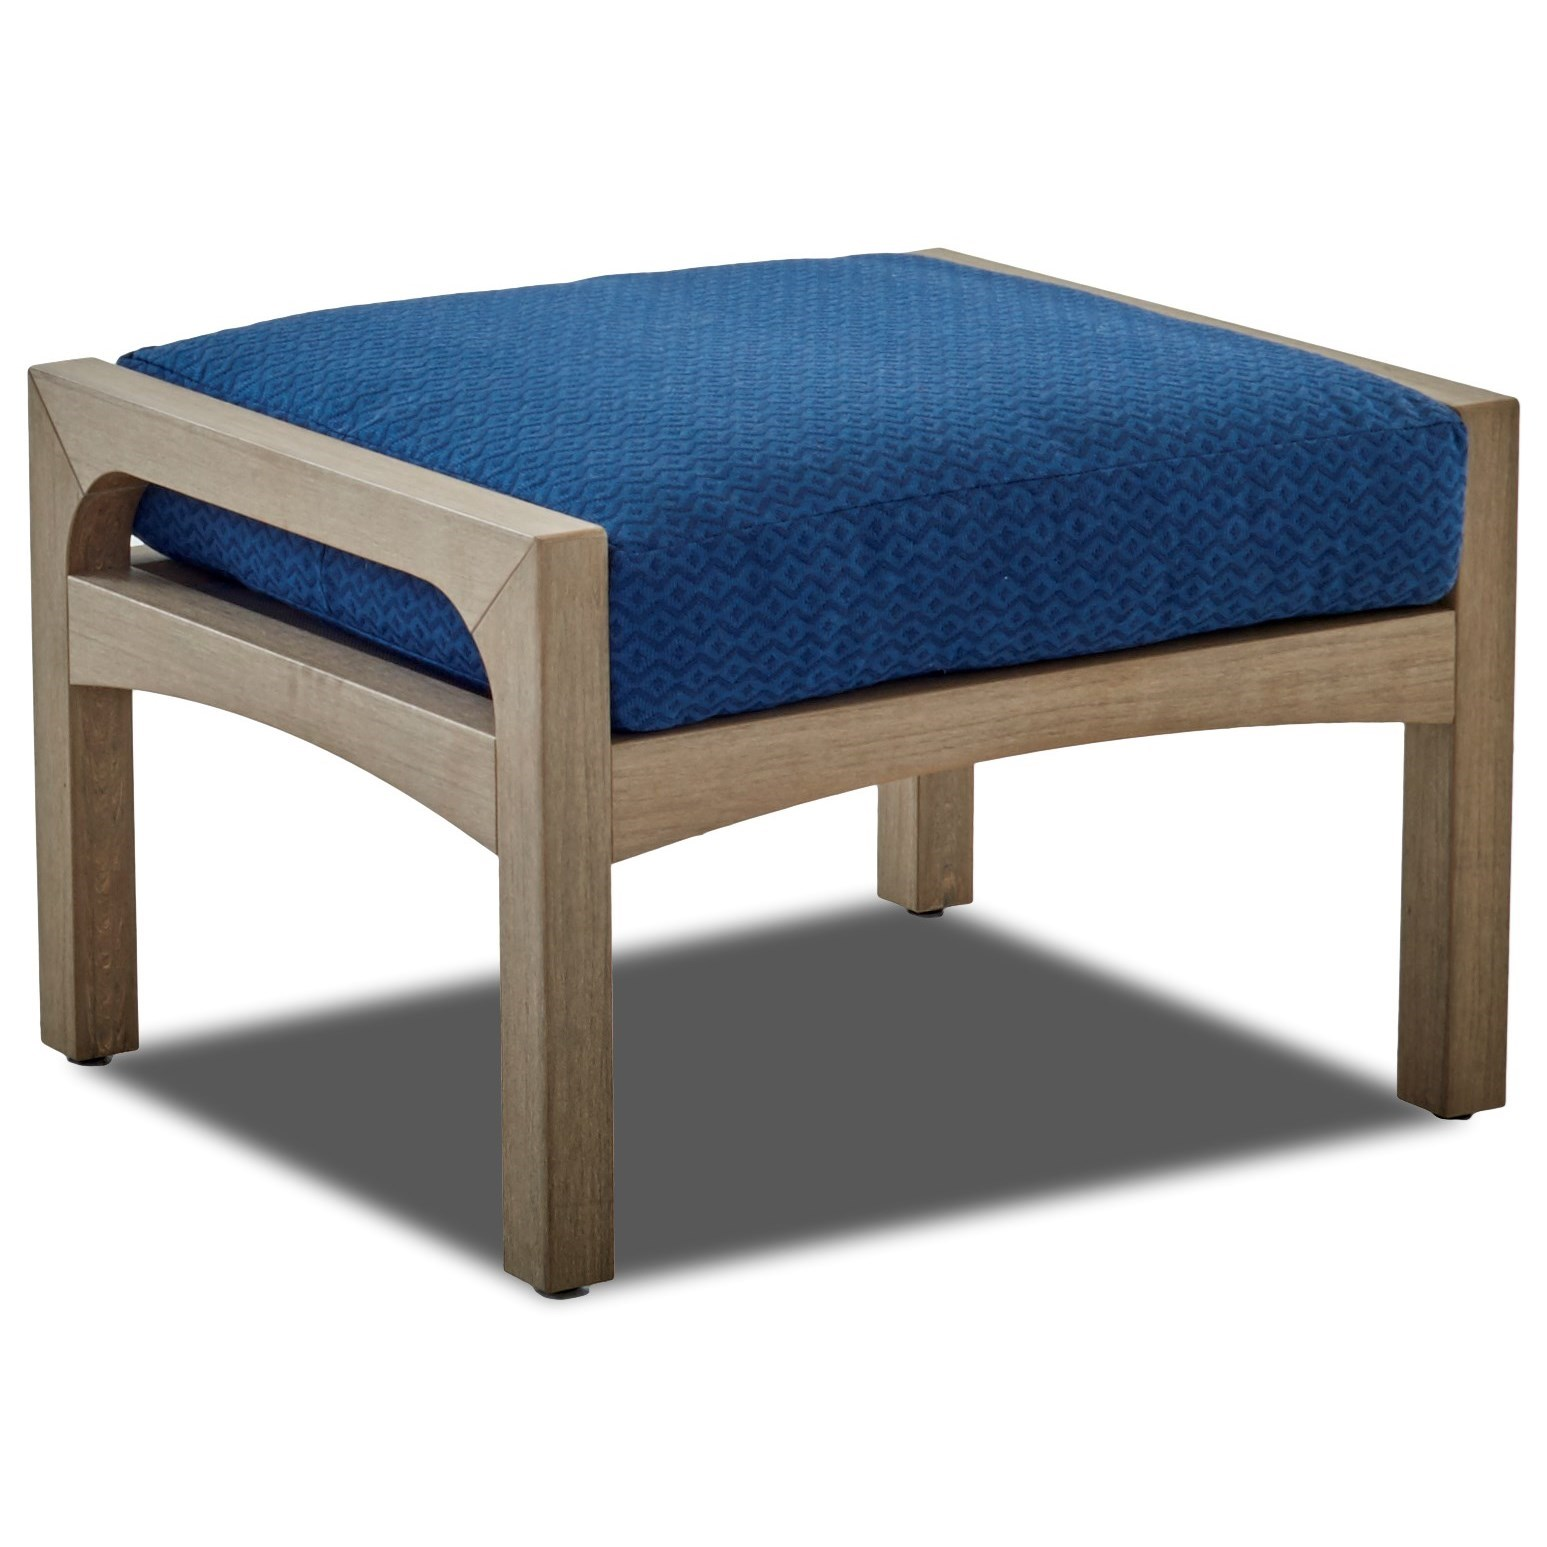 Delray Outdoor Ottoman with Drainable Cushion by Klaussner Outdoor at Pilgrim Furniture City